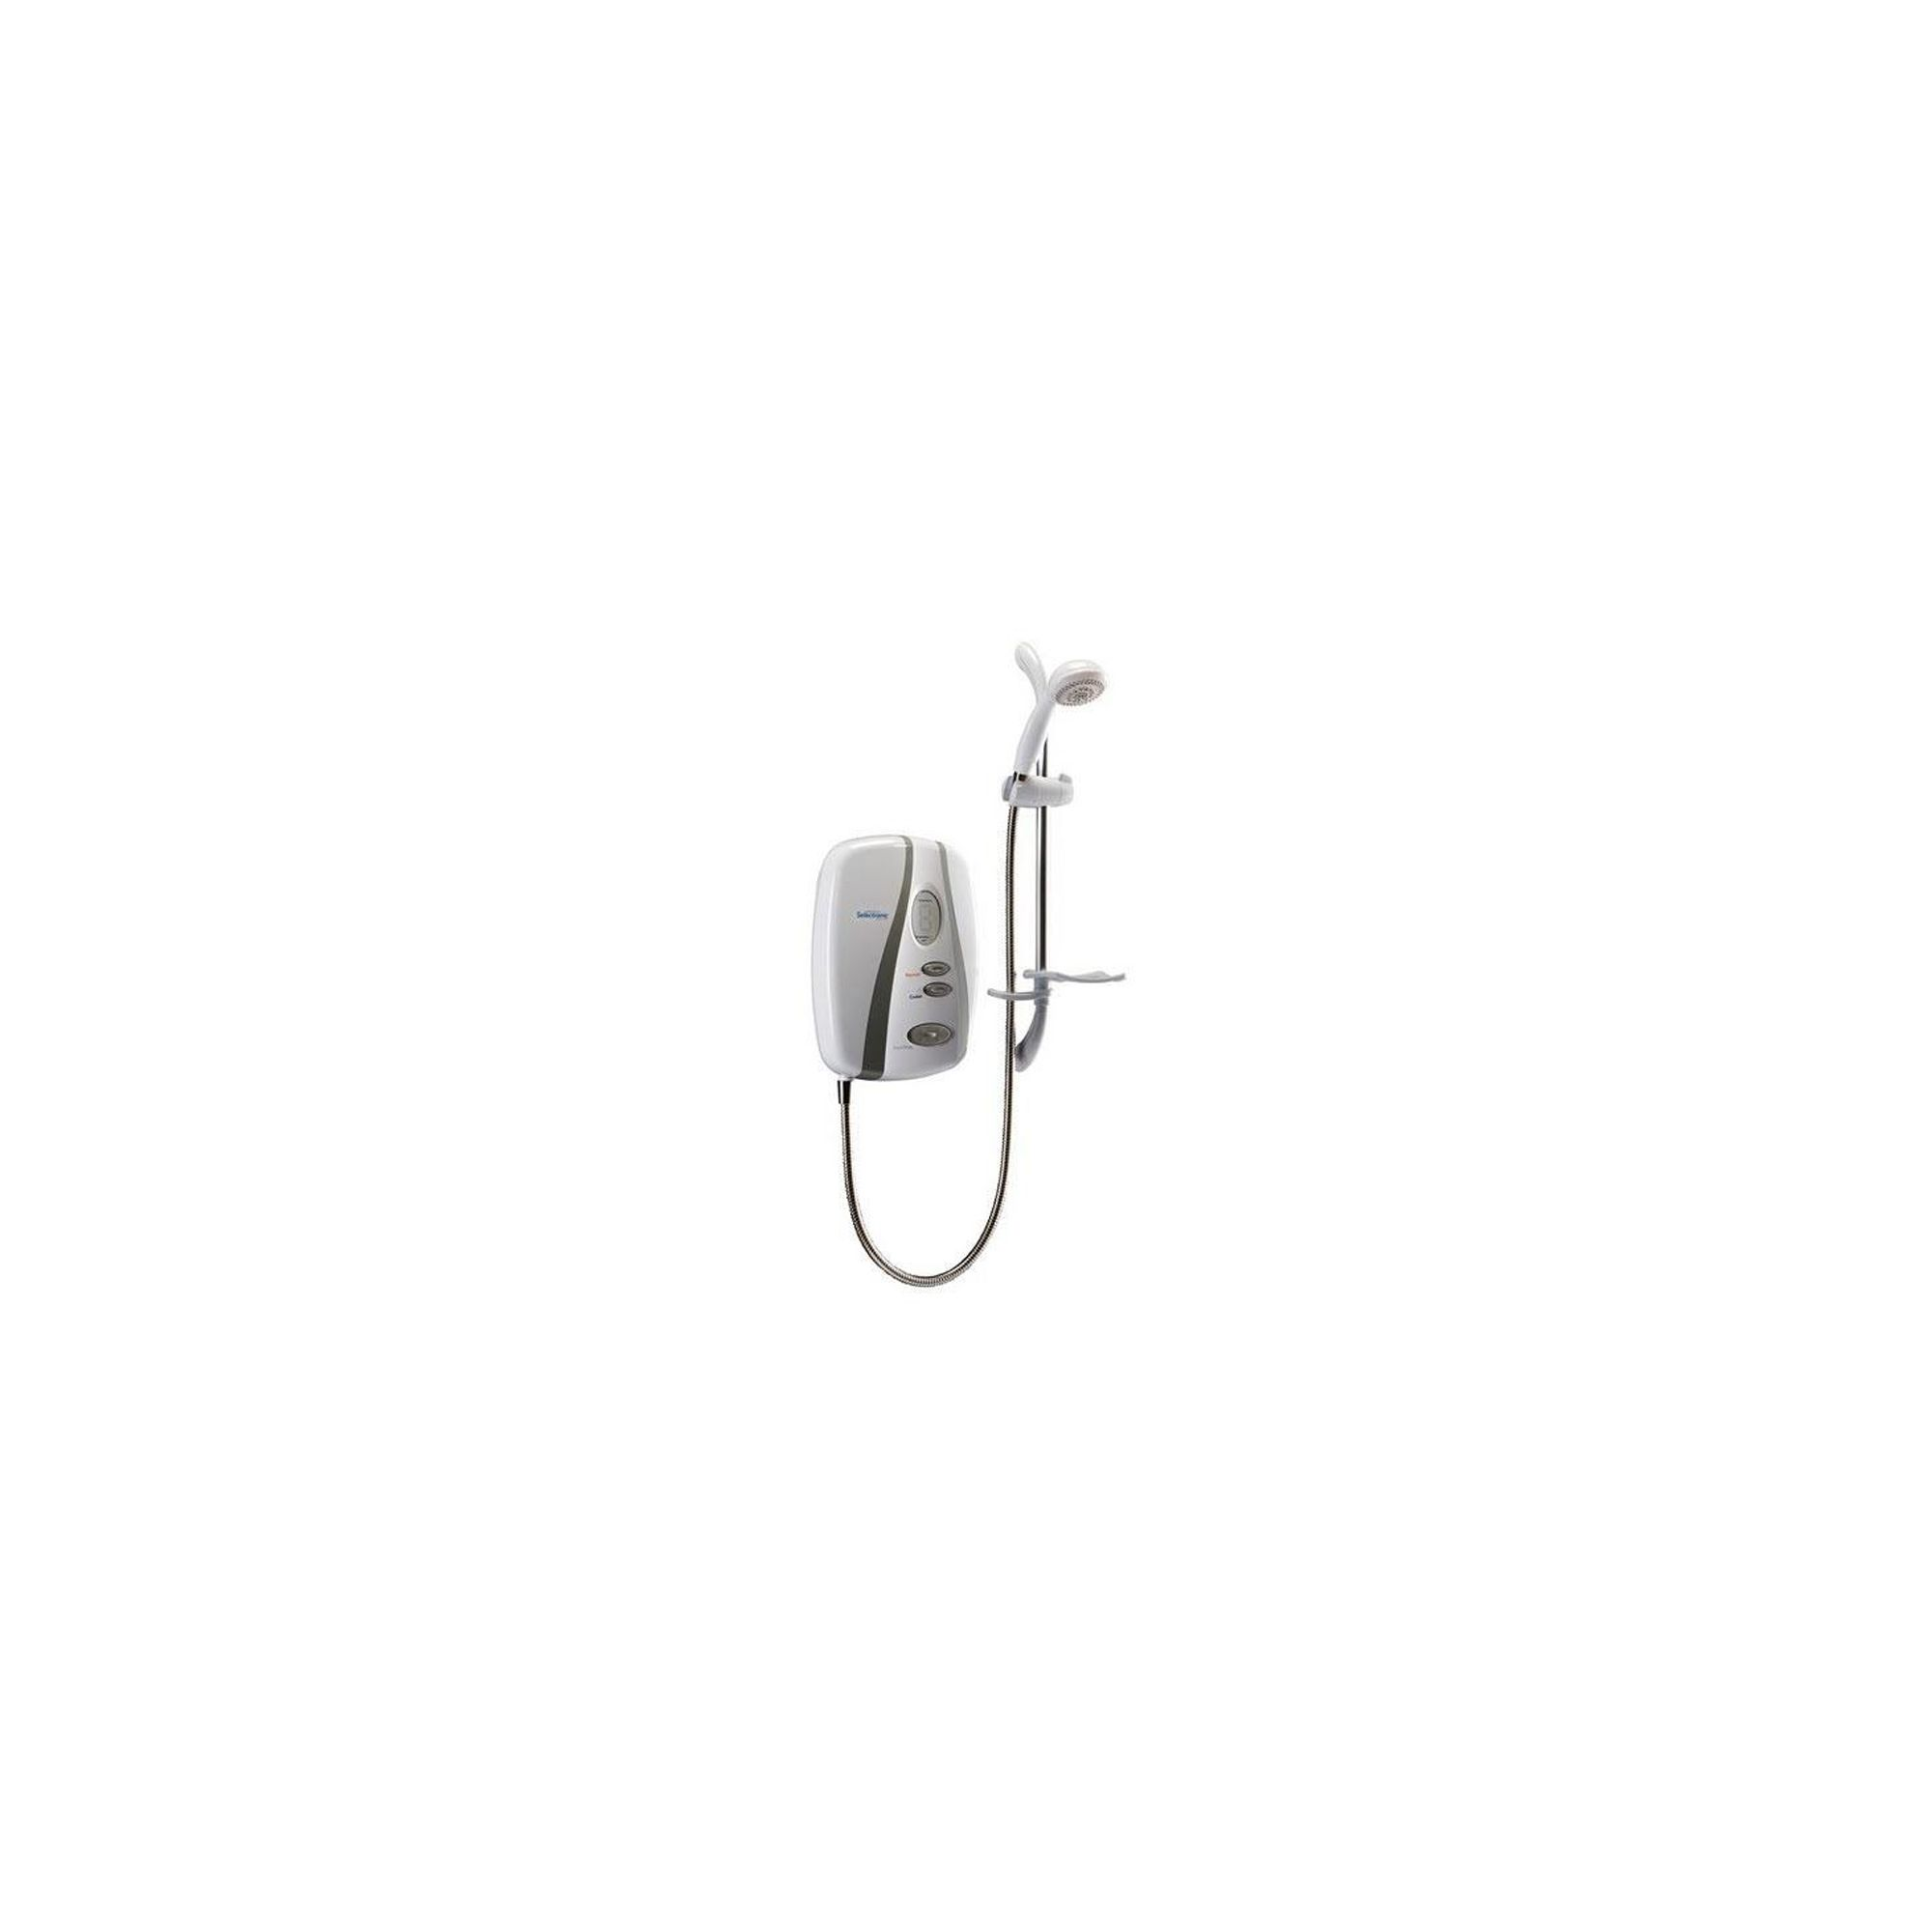 Redring Selectronic Premier Plus Electric Shower White/Chrome 10.8kW at Tesco Direct